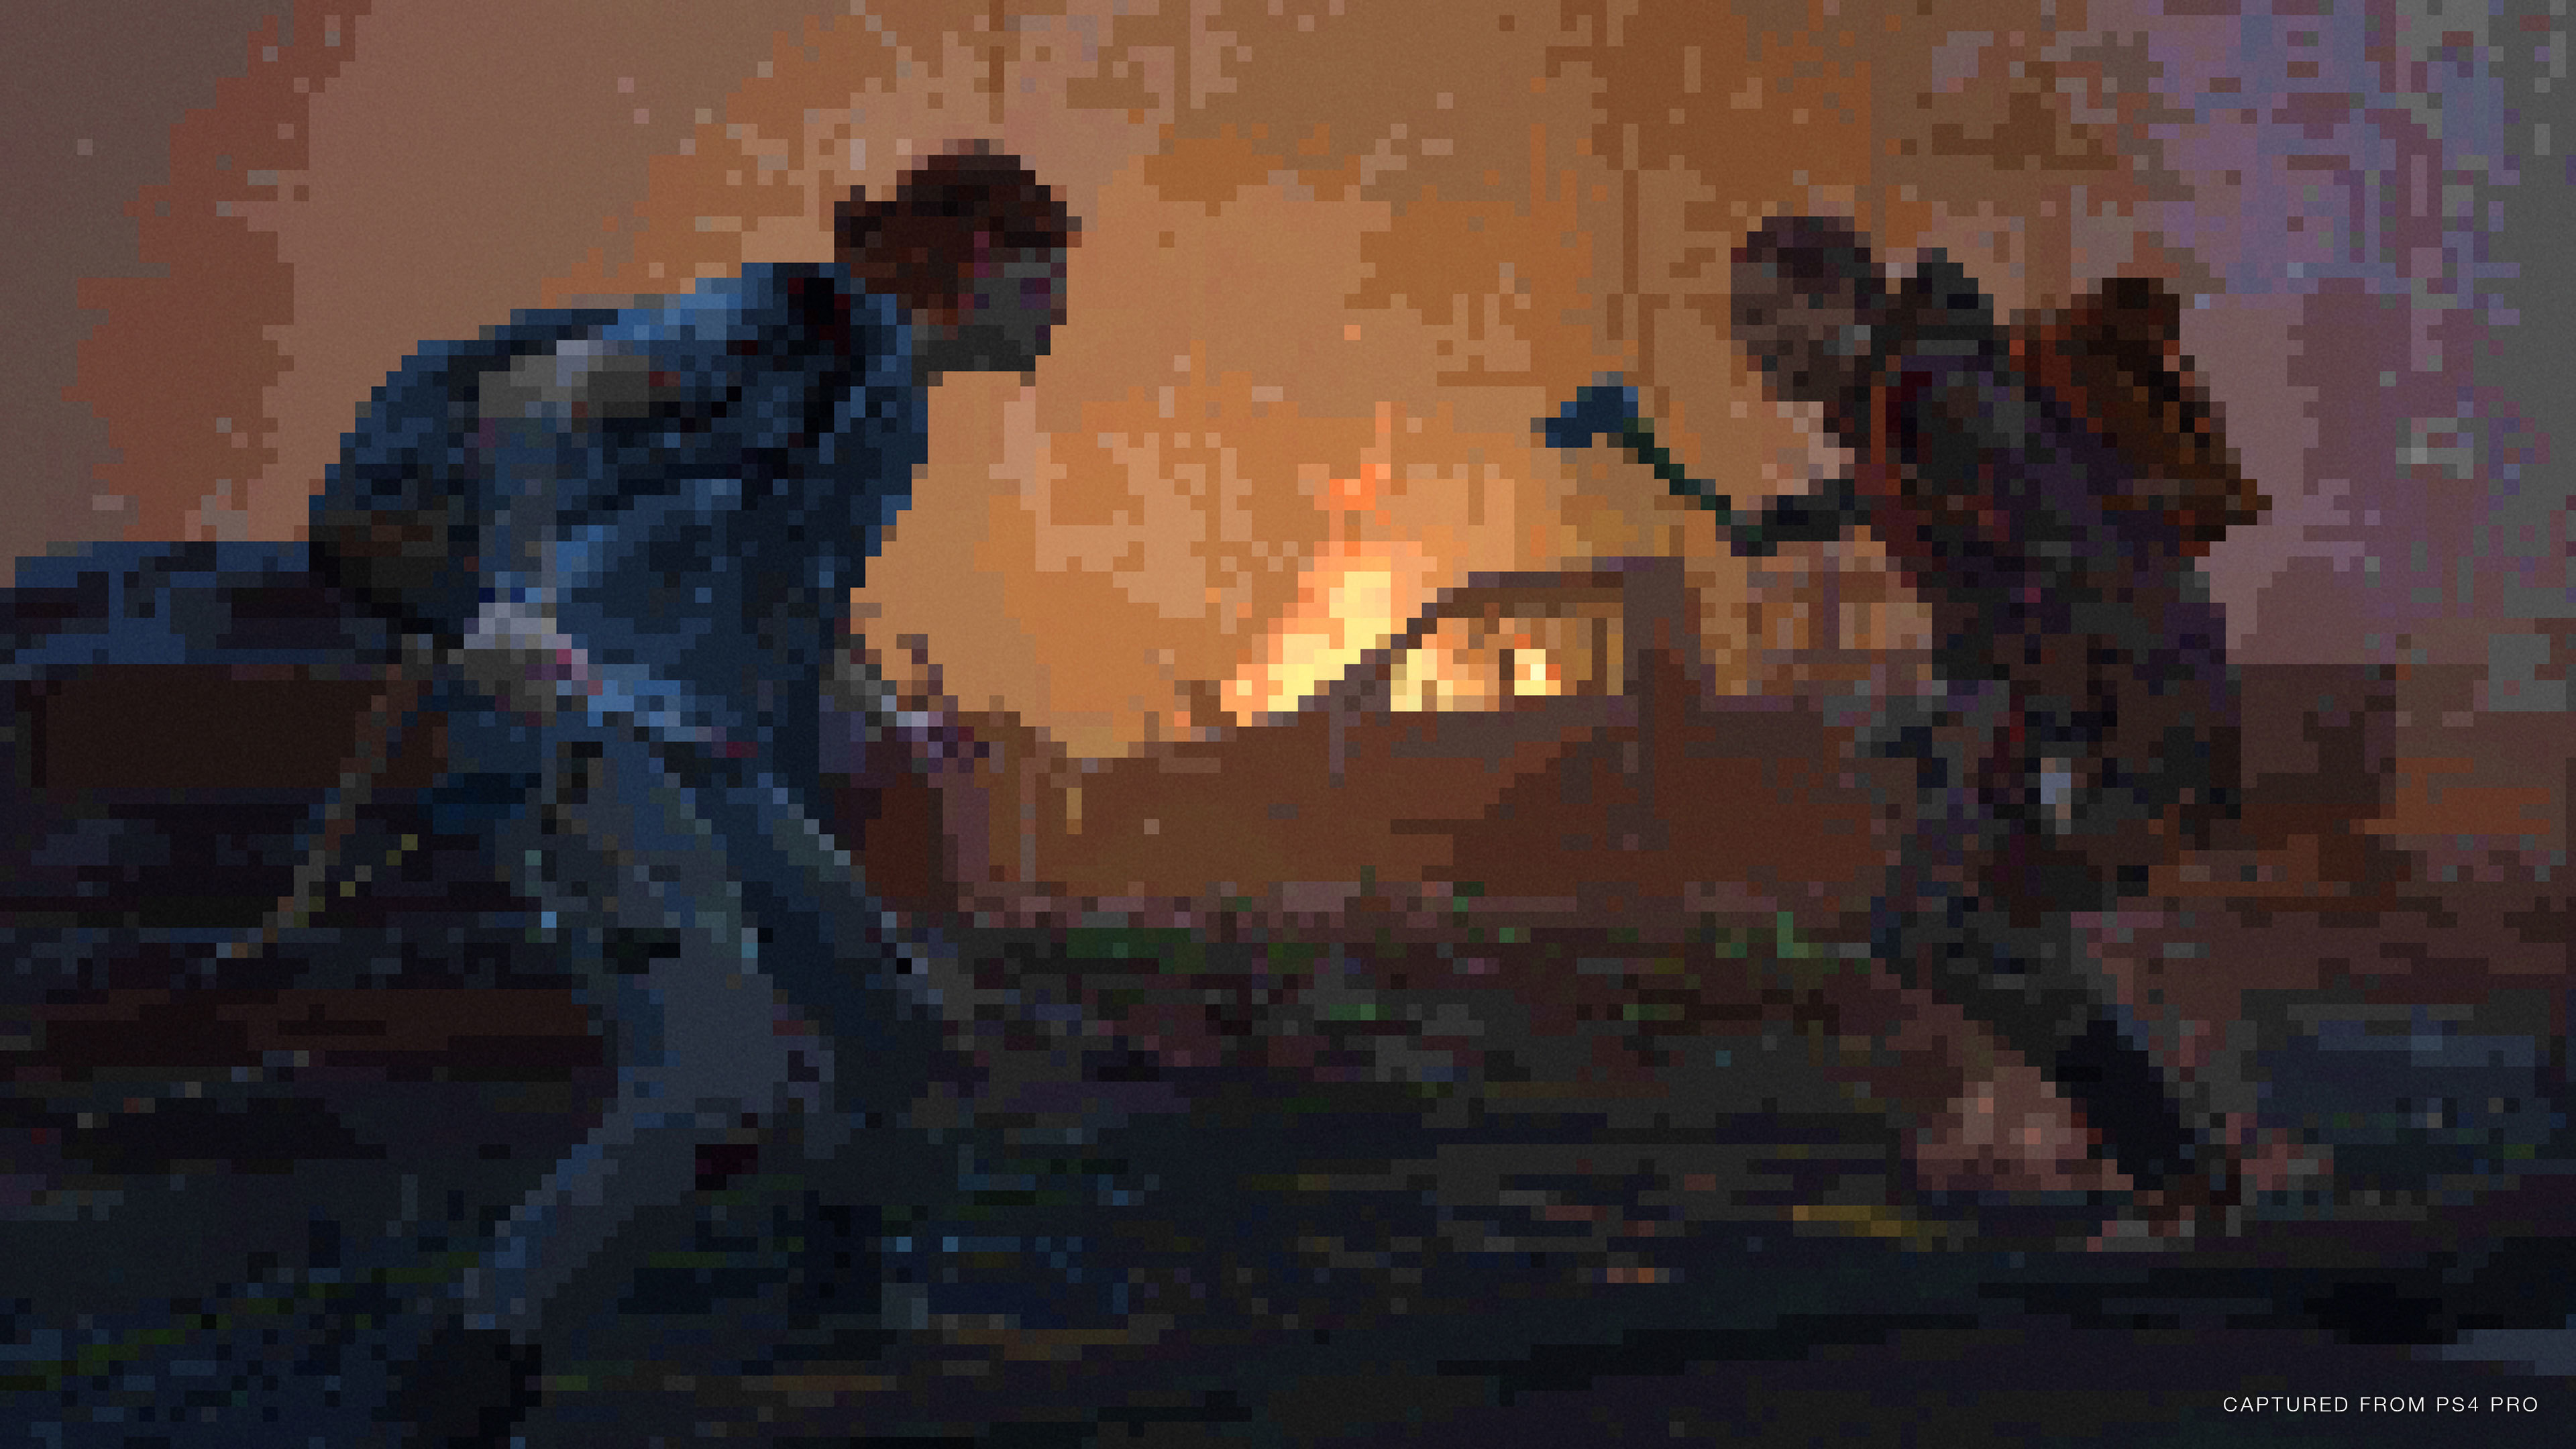 Ellie stands to the left of an enemy brandishing an axe against a fire lit background with the 8-bit render mode over the action.